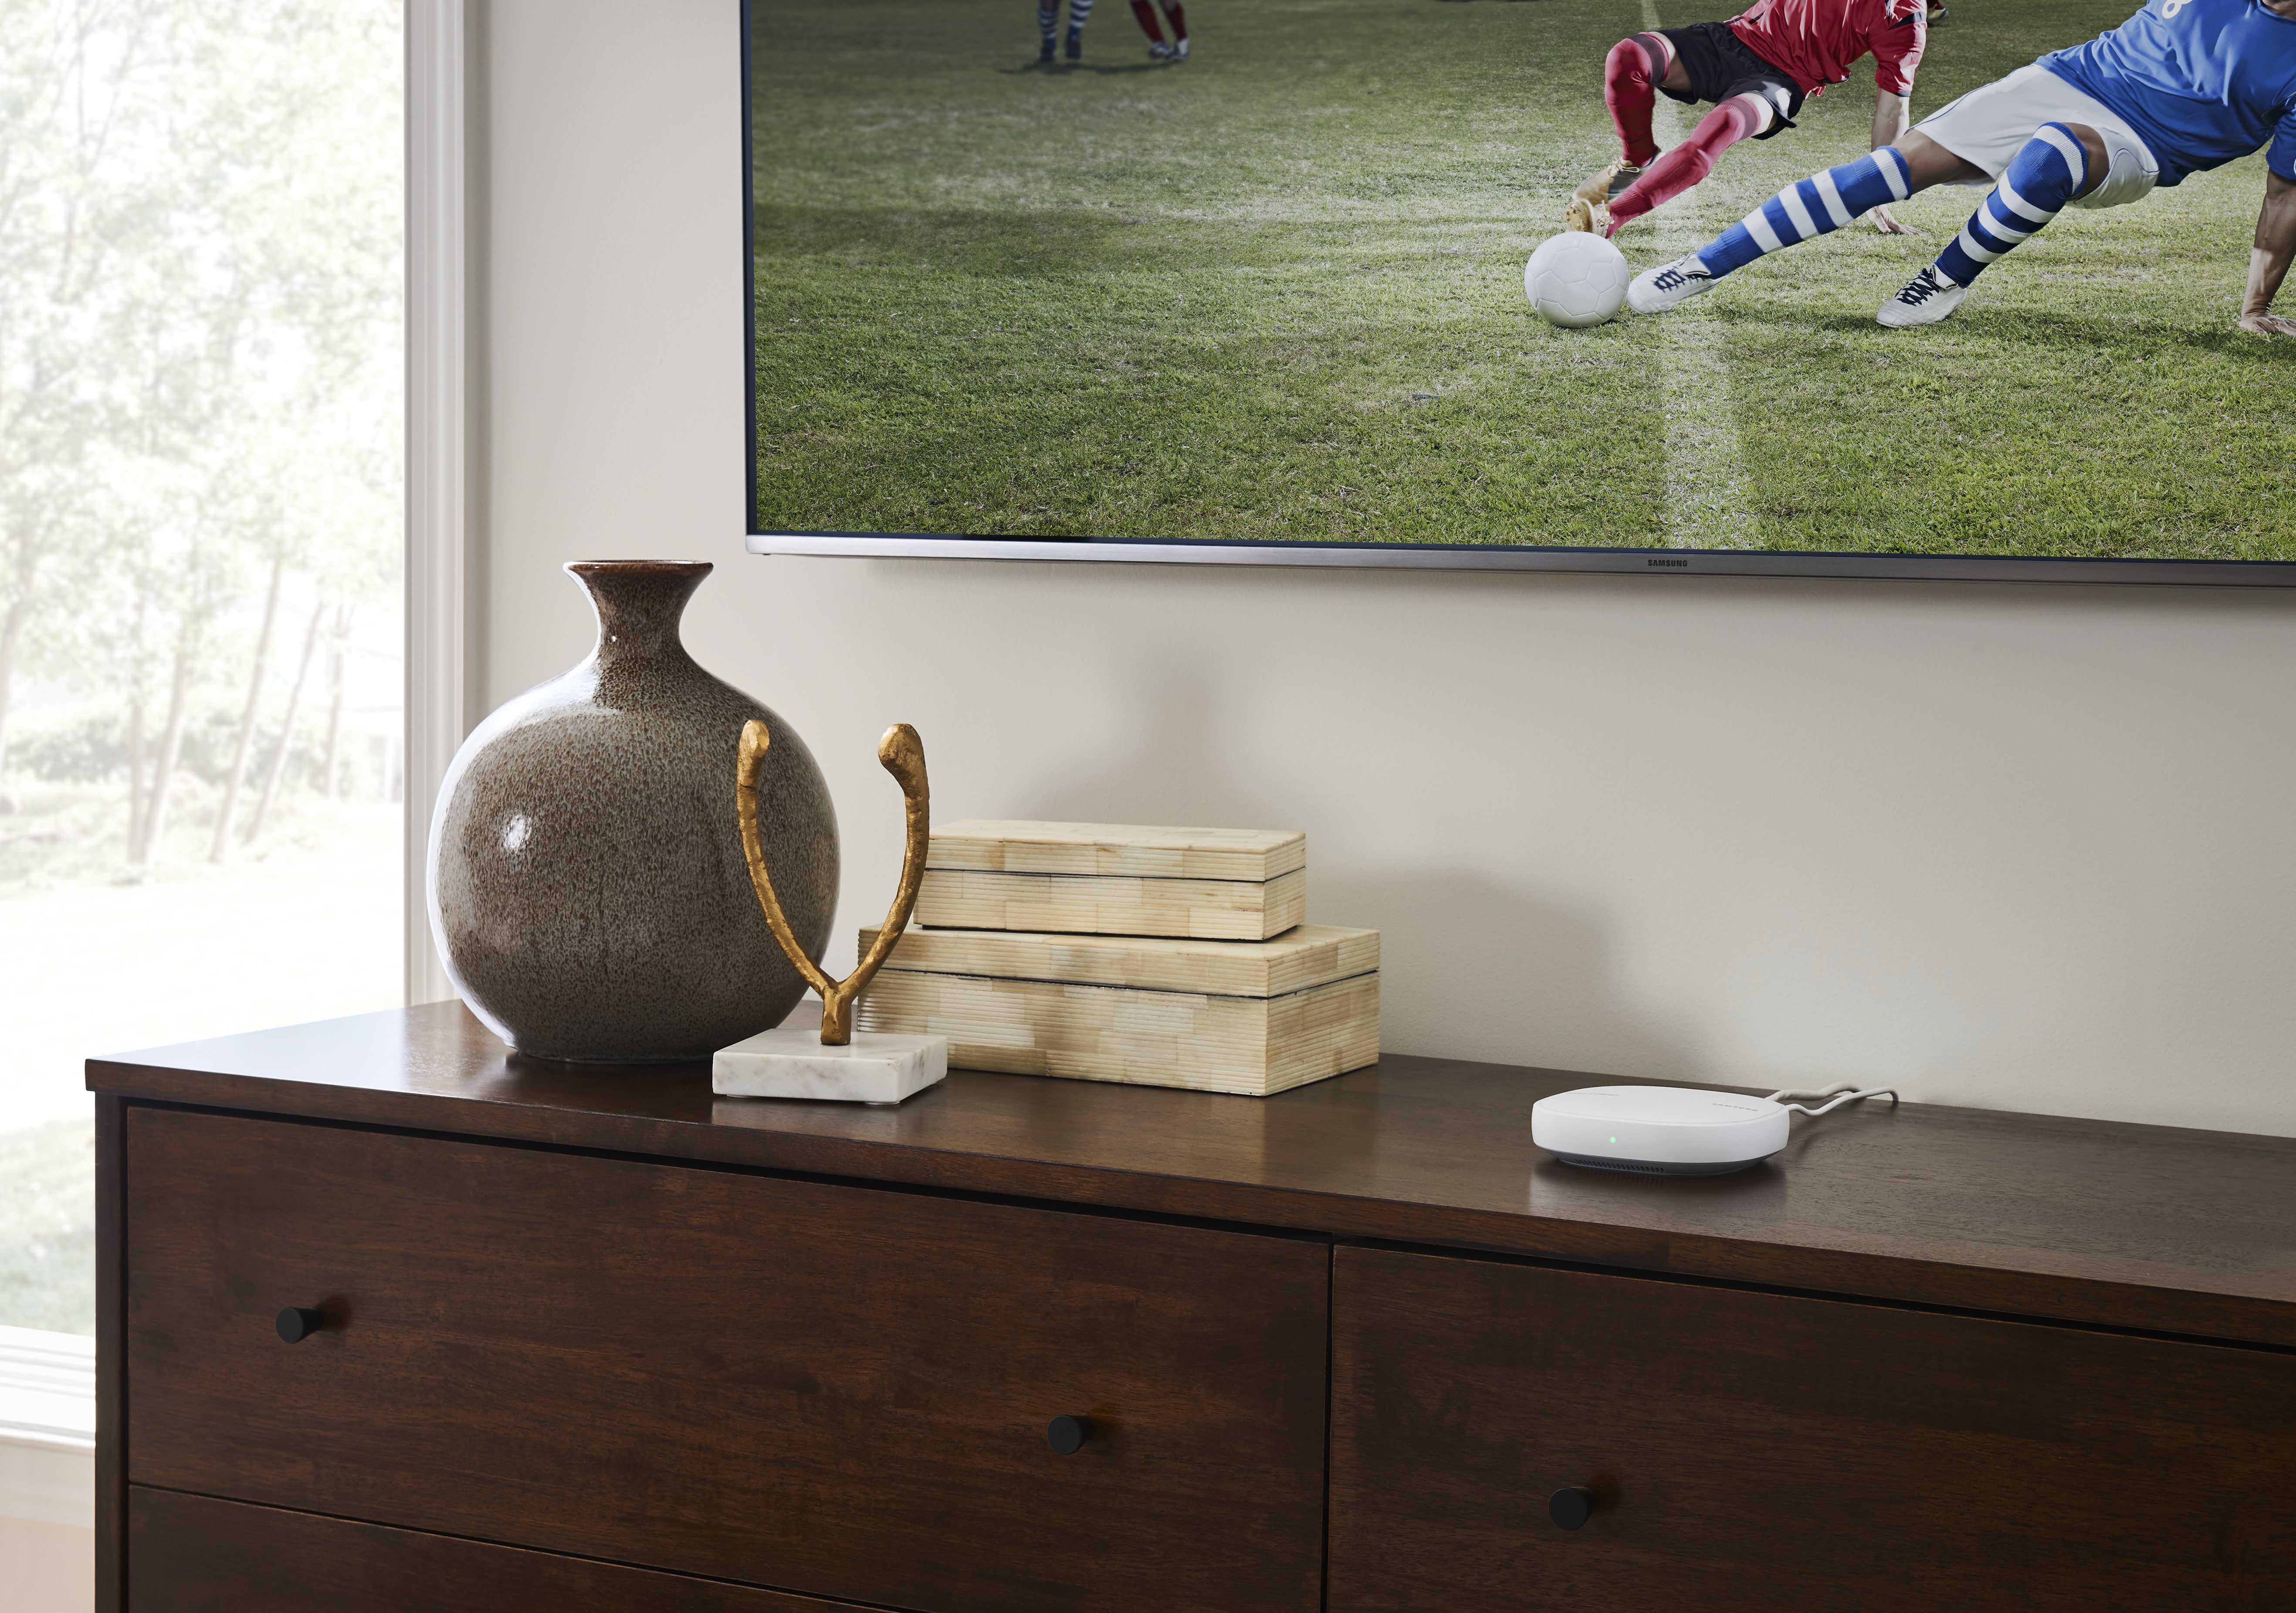 SmartThings Wi-Fi - Lifestyle Images